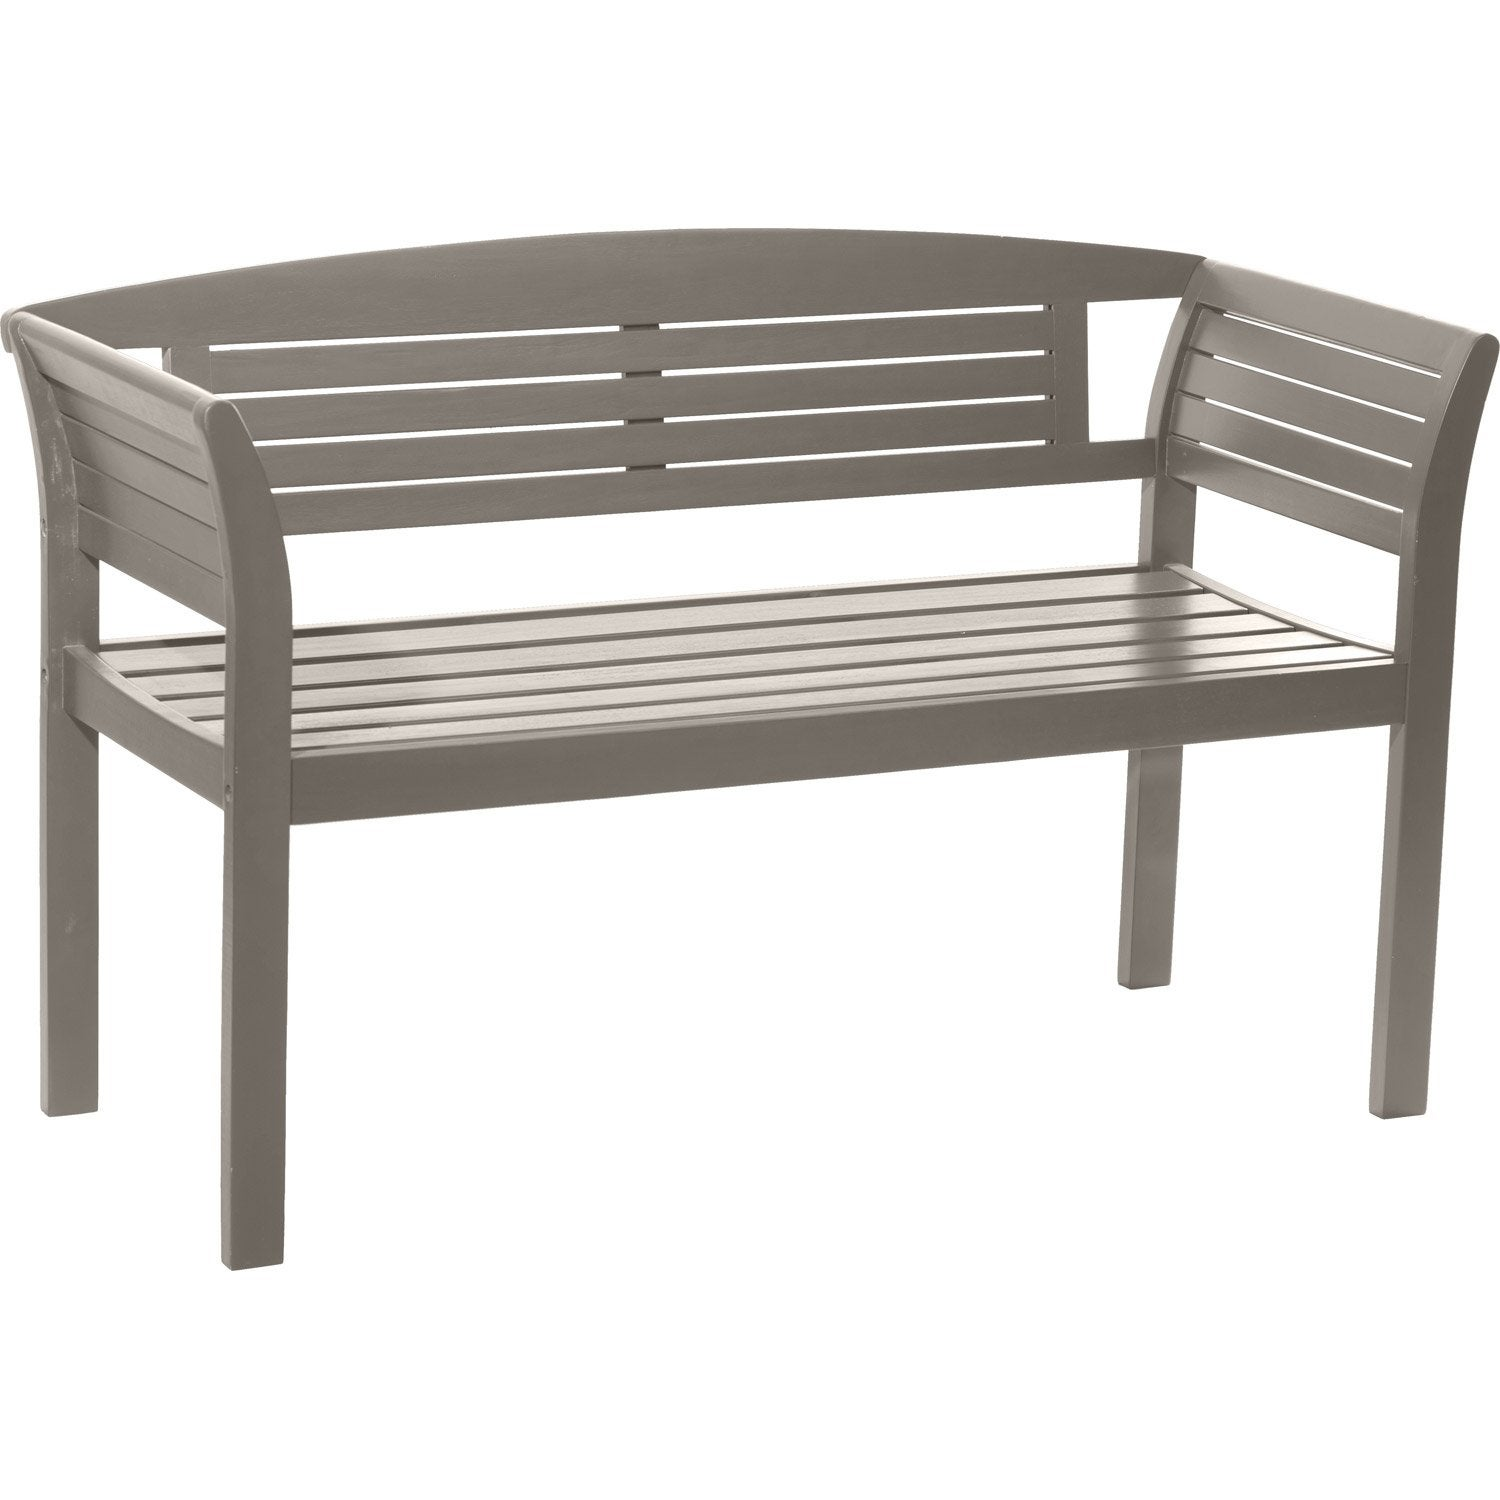 Banc 2 places de jardin en bois new york r glisse leroy for Banc de jardin leroy merlin